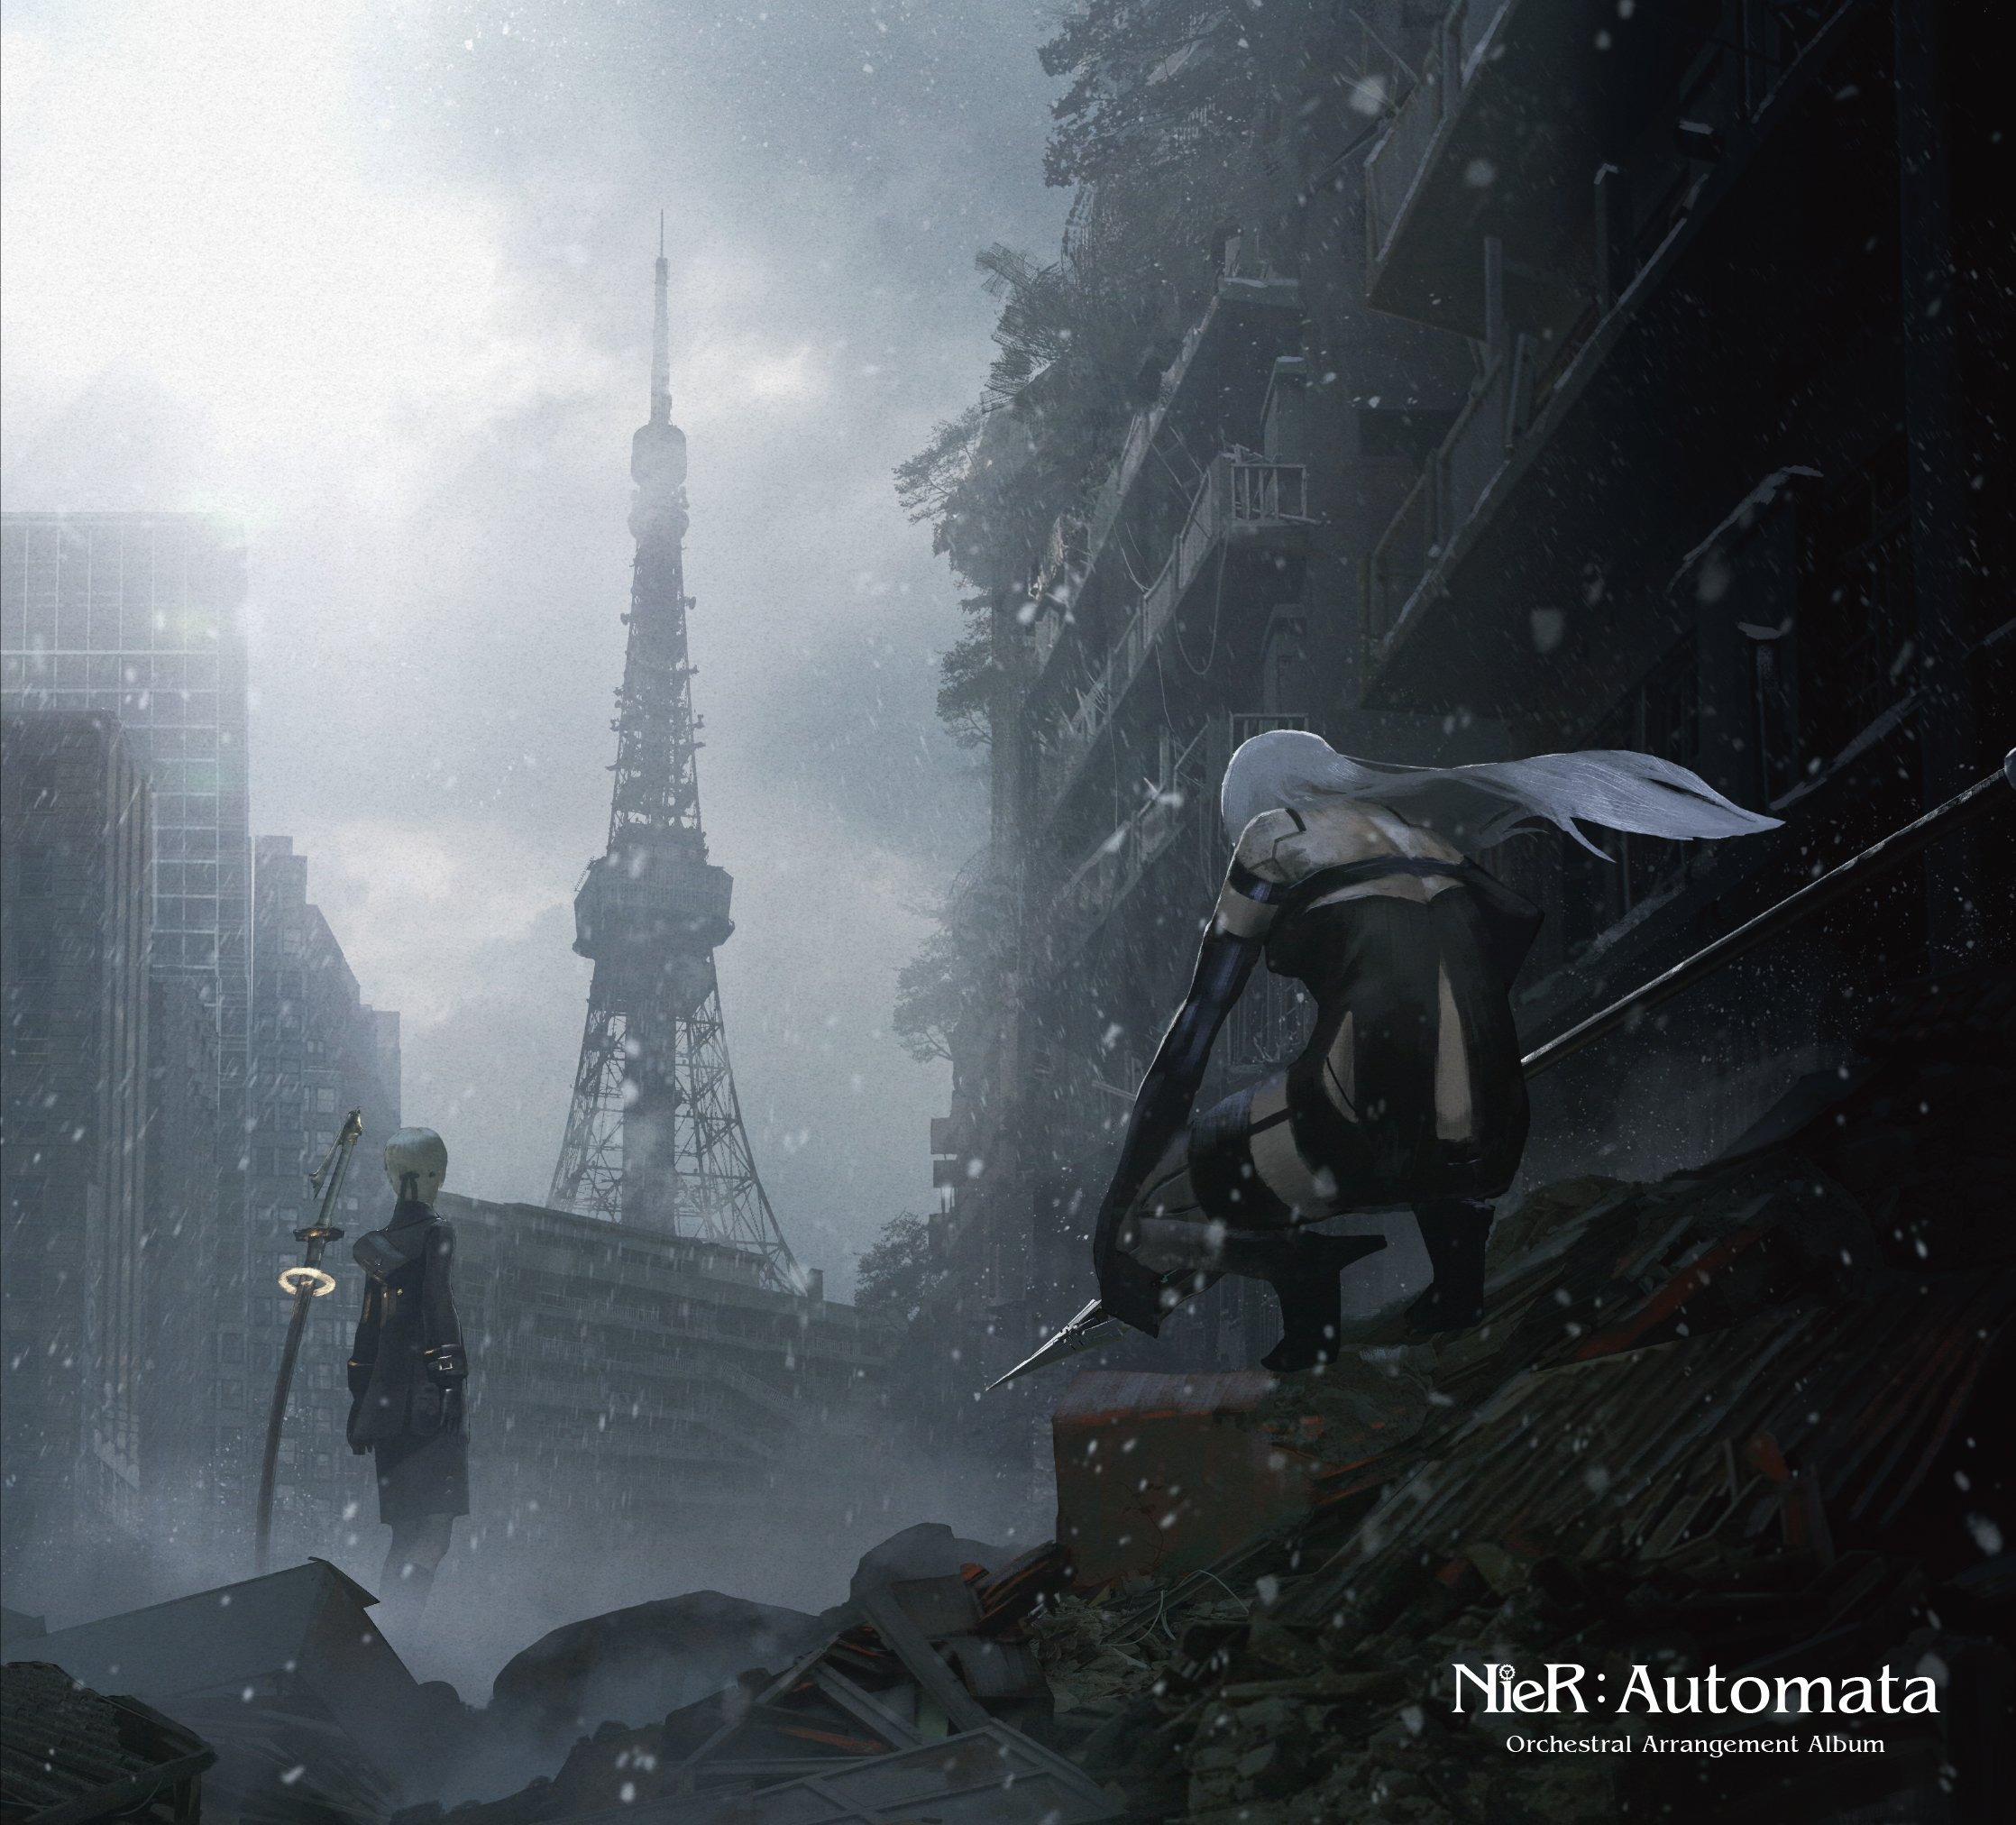 Nier: Automata Orchestral Arrangement Album (Original Soundtrack) by Sony Japan